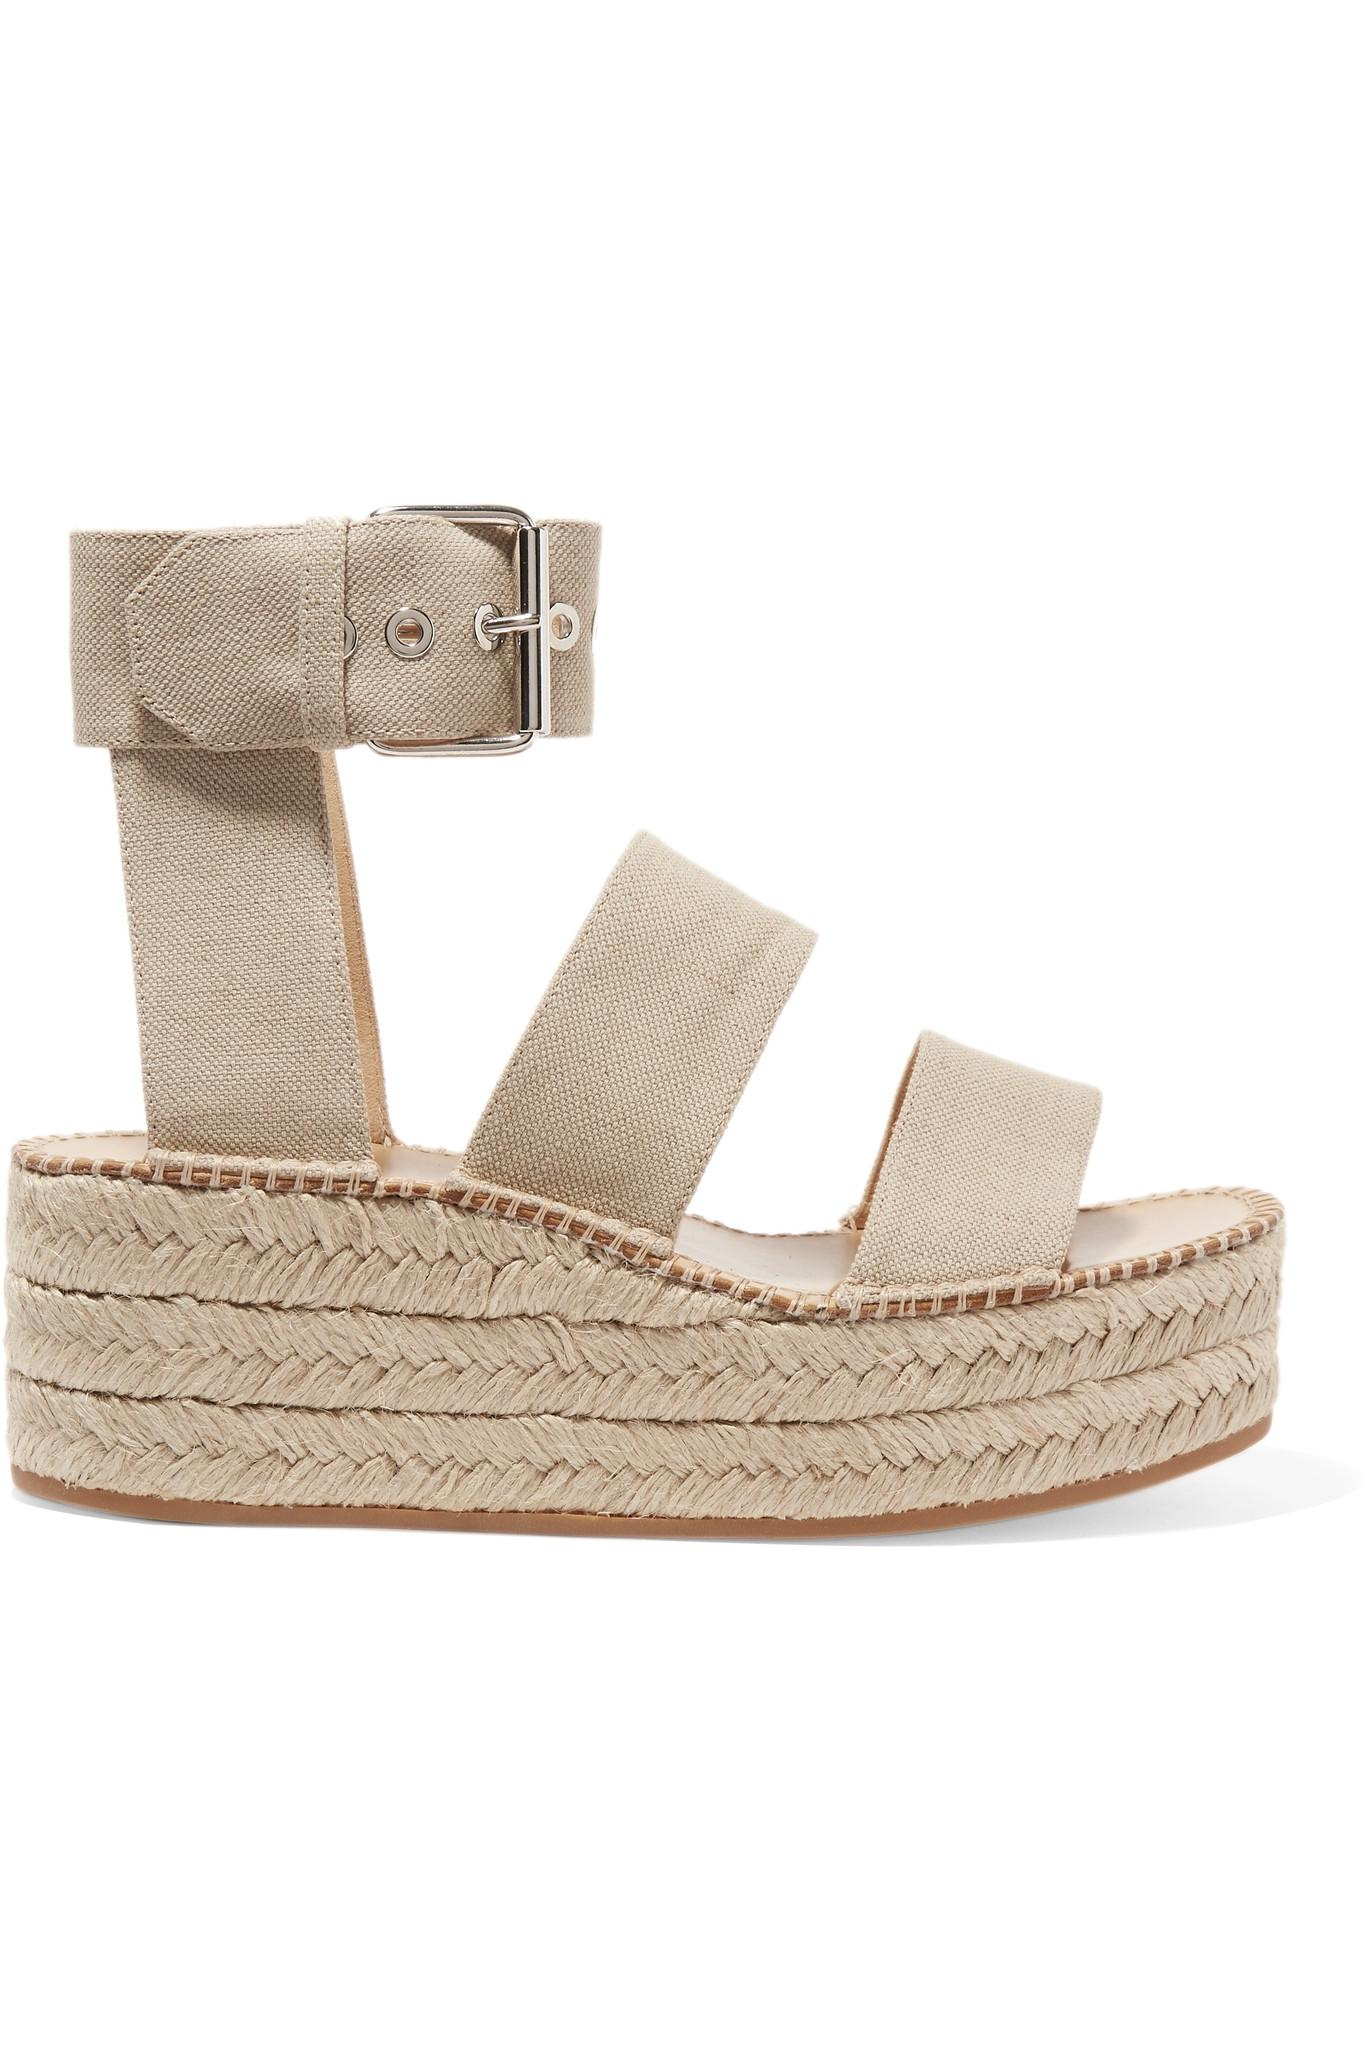 343b41555ab32 Lyst - Rag   Bone Woman Tara Canvas Platform Espadrille Sandals ...